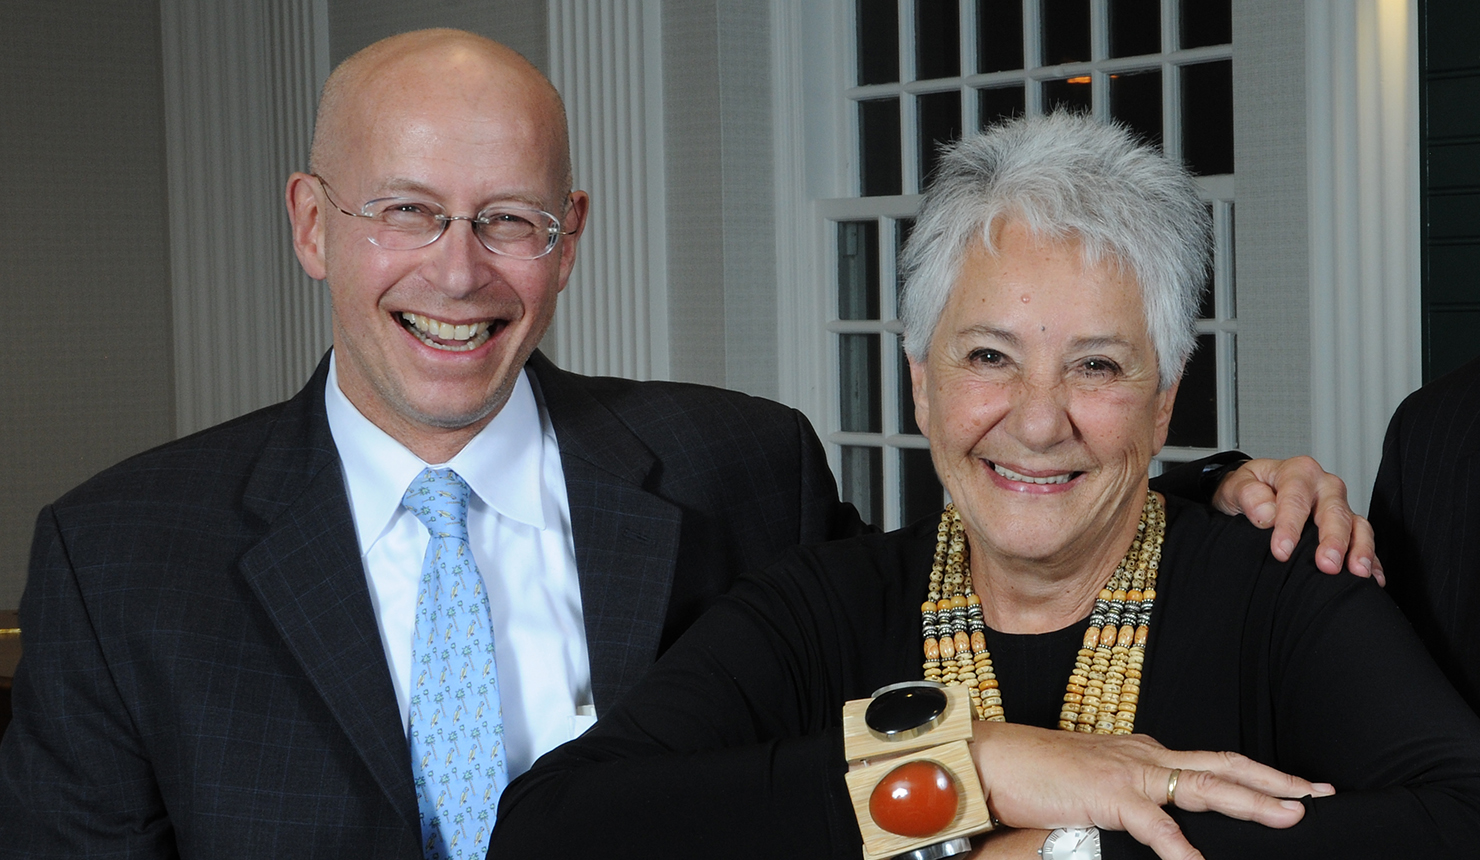 Dr. Andrew Pachner and Selma  Bornstein celebrate the creation of the the Murray B. Bornstein Professorship, which honors her late husband. Photo credit: Jon Gilbert Fox